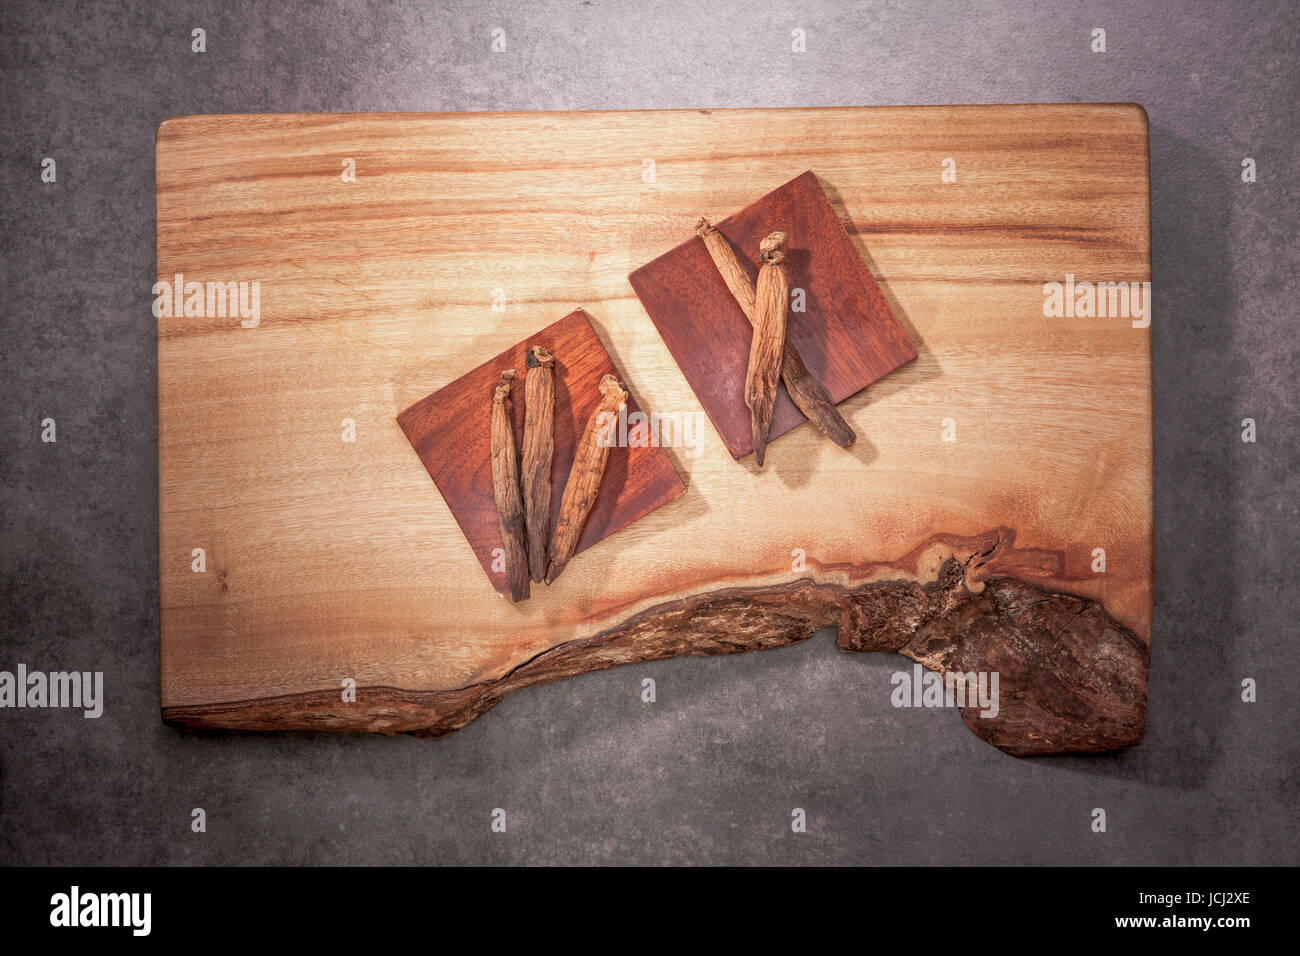 Traditional Korean Medicine Dry Red Ginseng Stock Photo 145456262